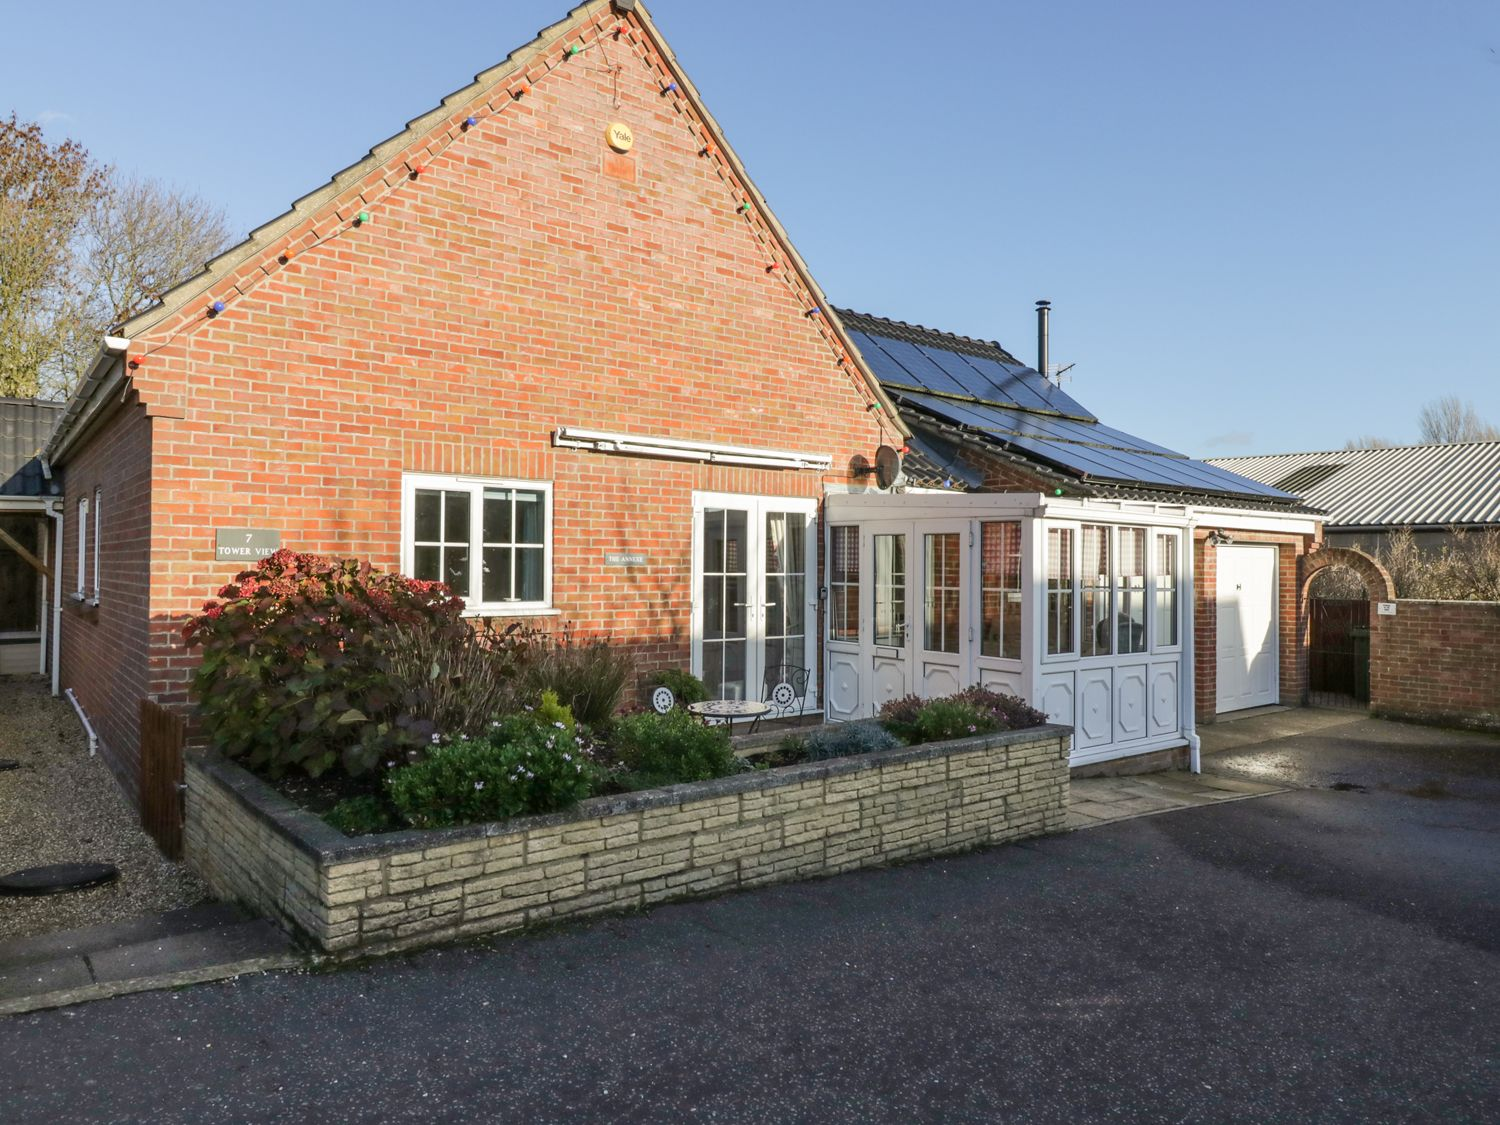 Annexe - Norfolk - 950117 - photo 1